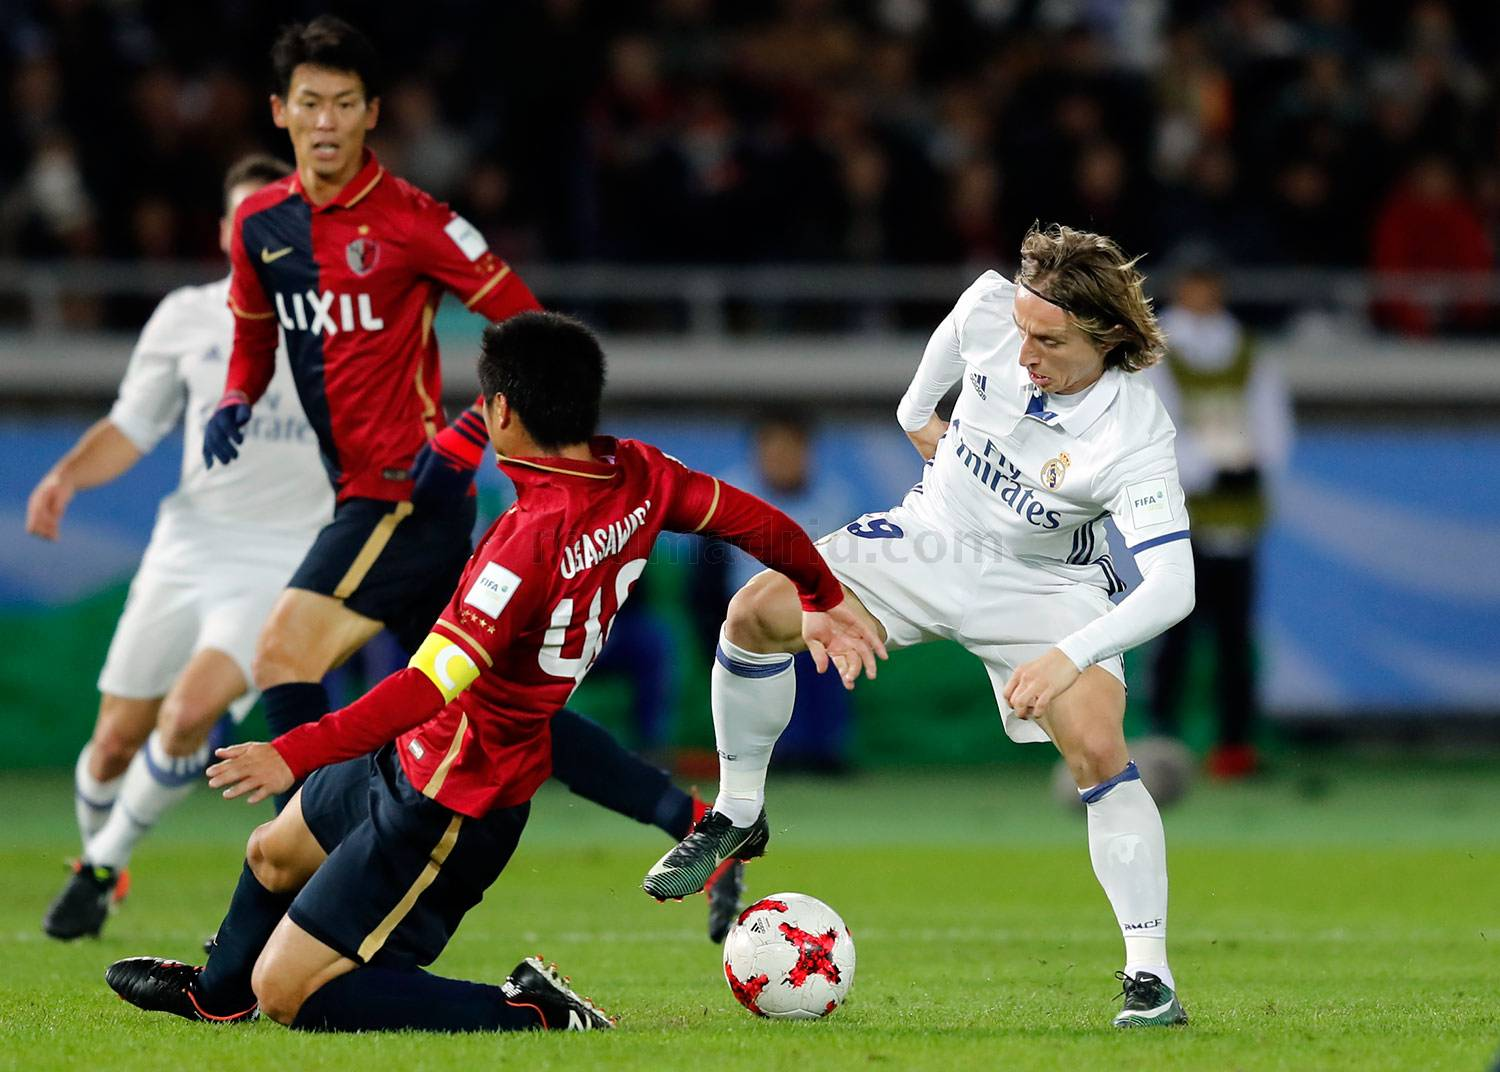 Real Madrid - Real Madrid - Kashima Antlers - 18-12-2016